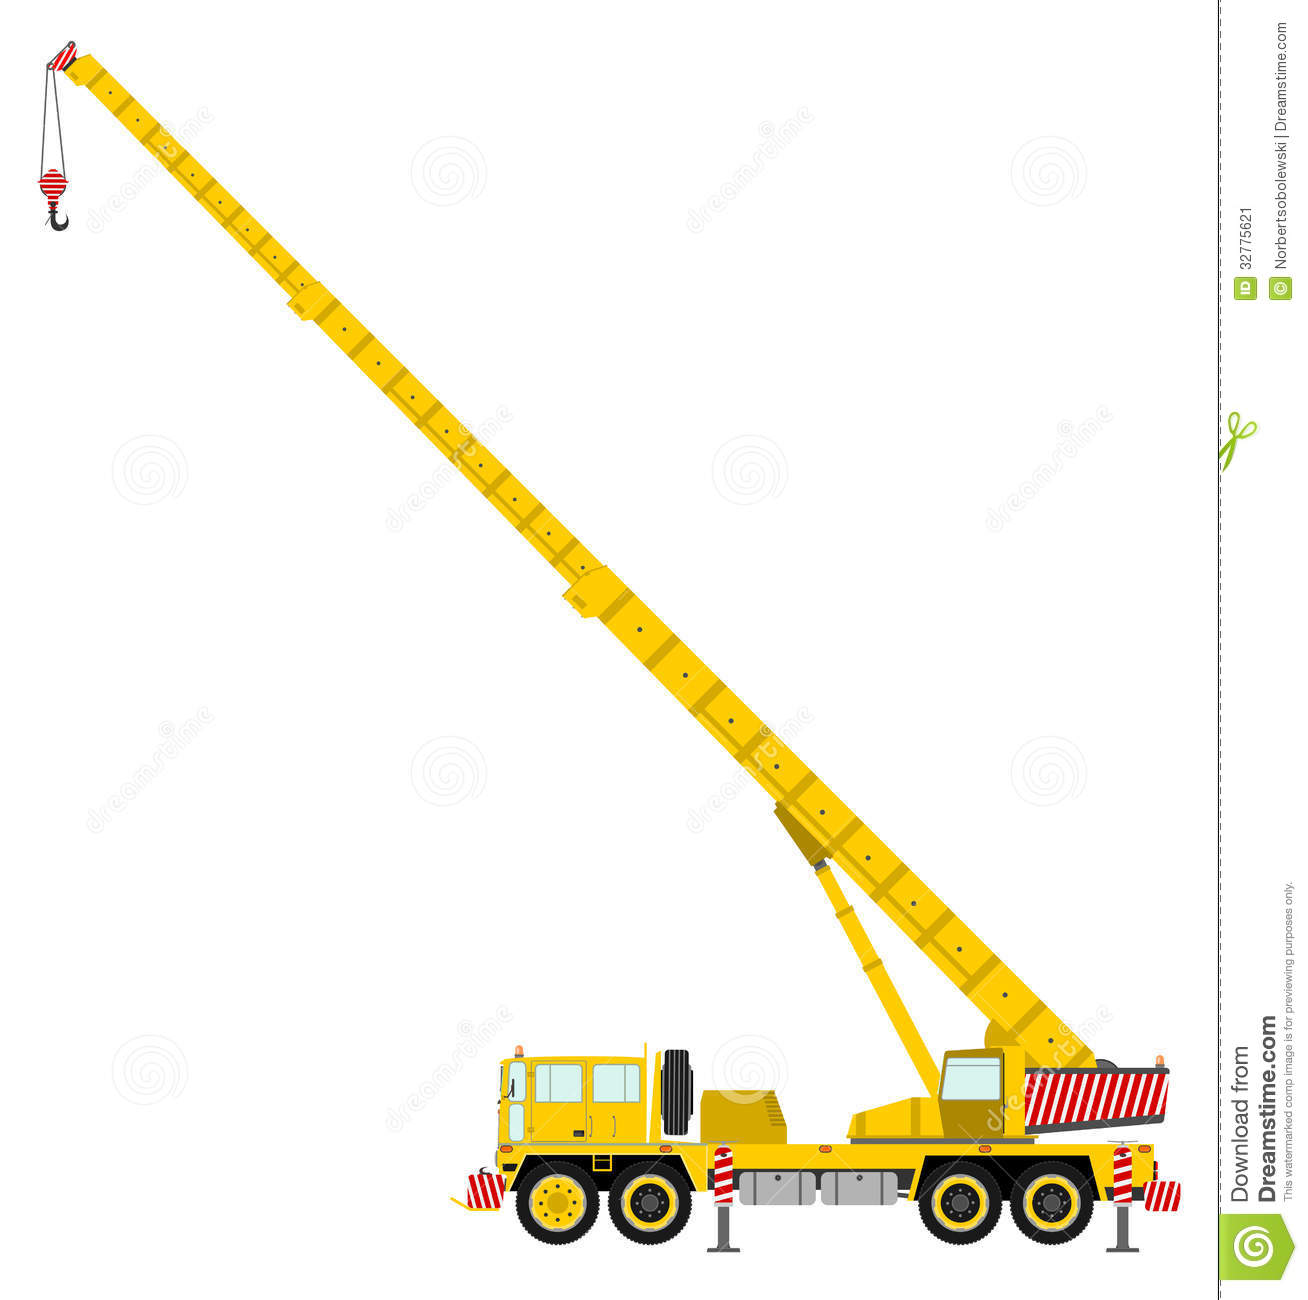 Crane clipart #4, Download drawings